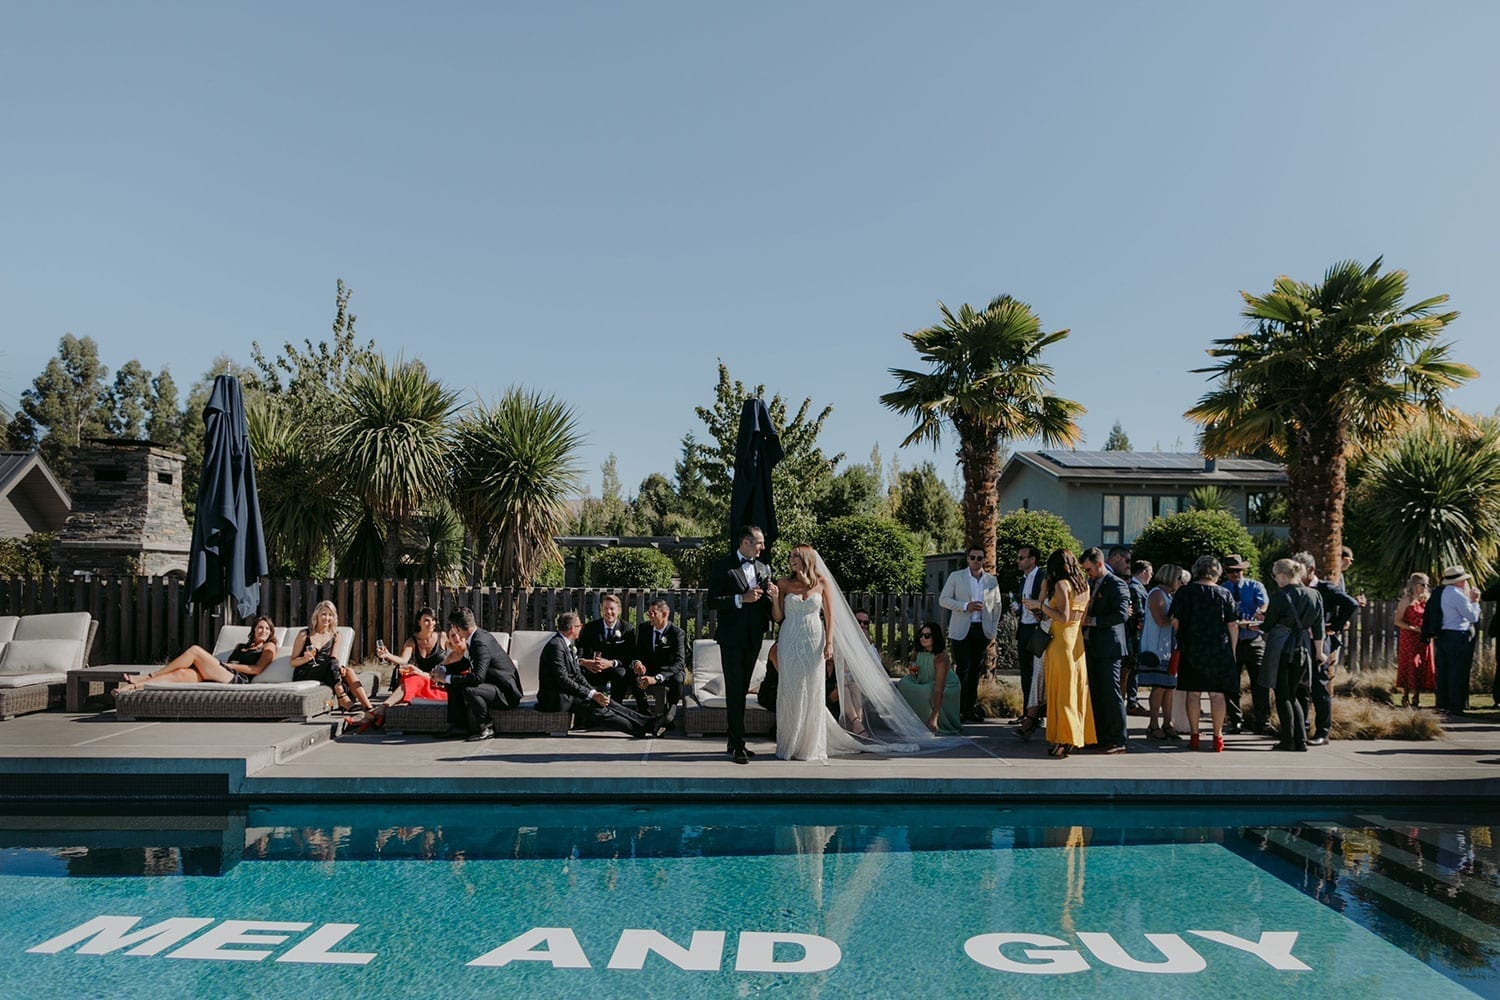 Vinka Design Features Real Weddings - bride in custom made gown, a combination of our Indi wedding dress with added beading appliqued and sewn by hand, over the top of a nude semi sheer base. With guests outdoors next to pool